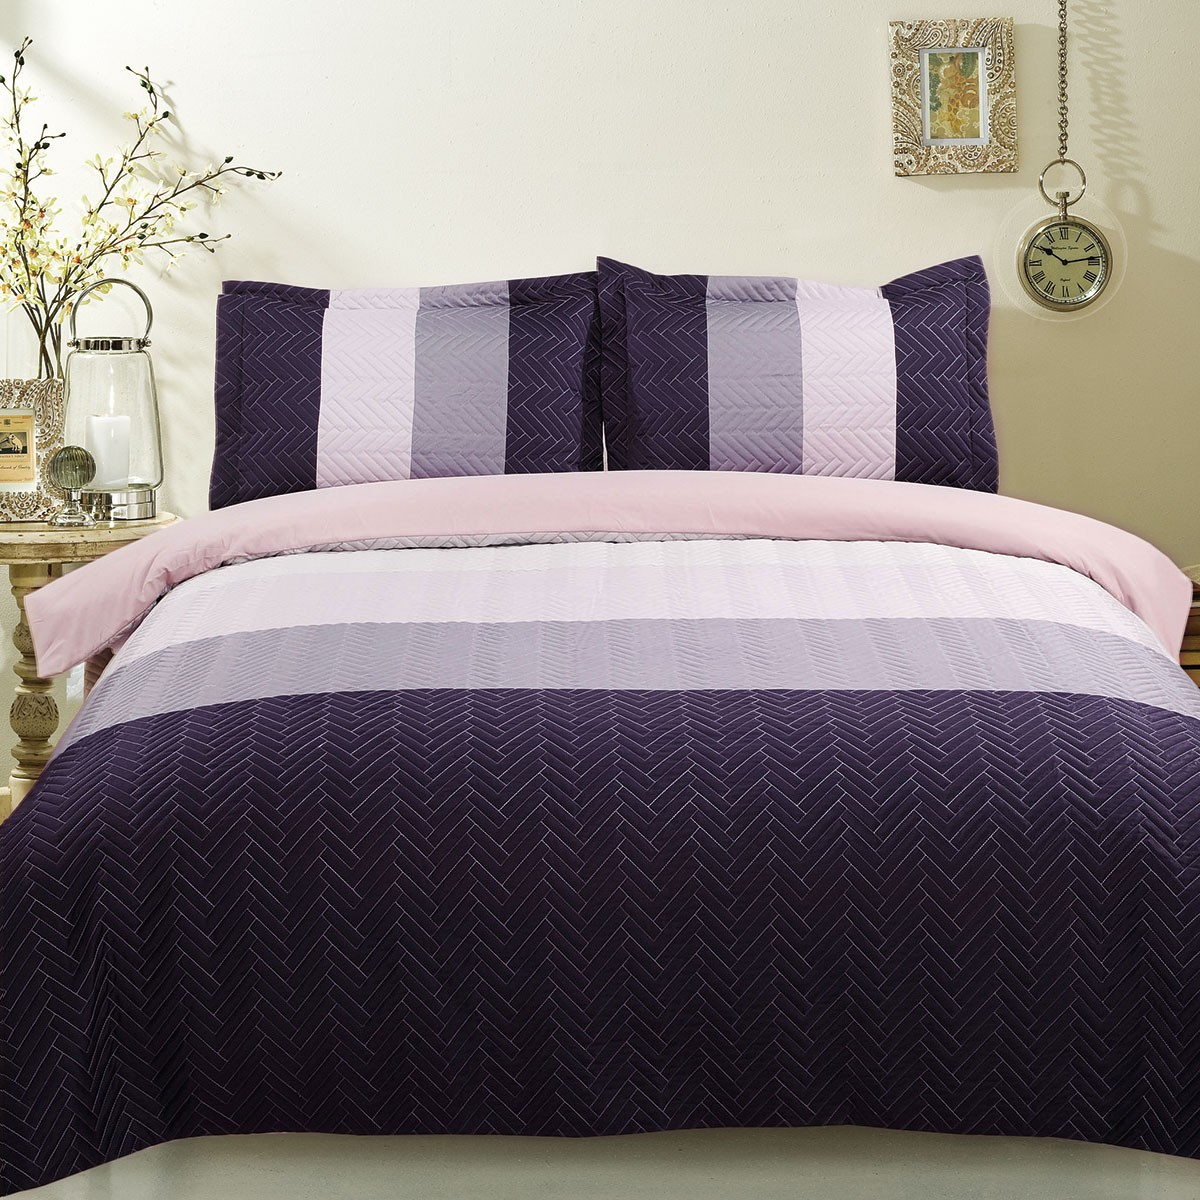 3-Piece Purple Duvet Cover Set (DK-LJ007)